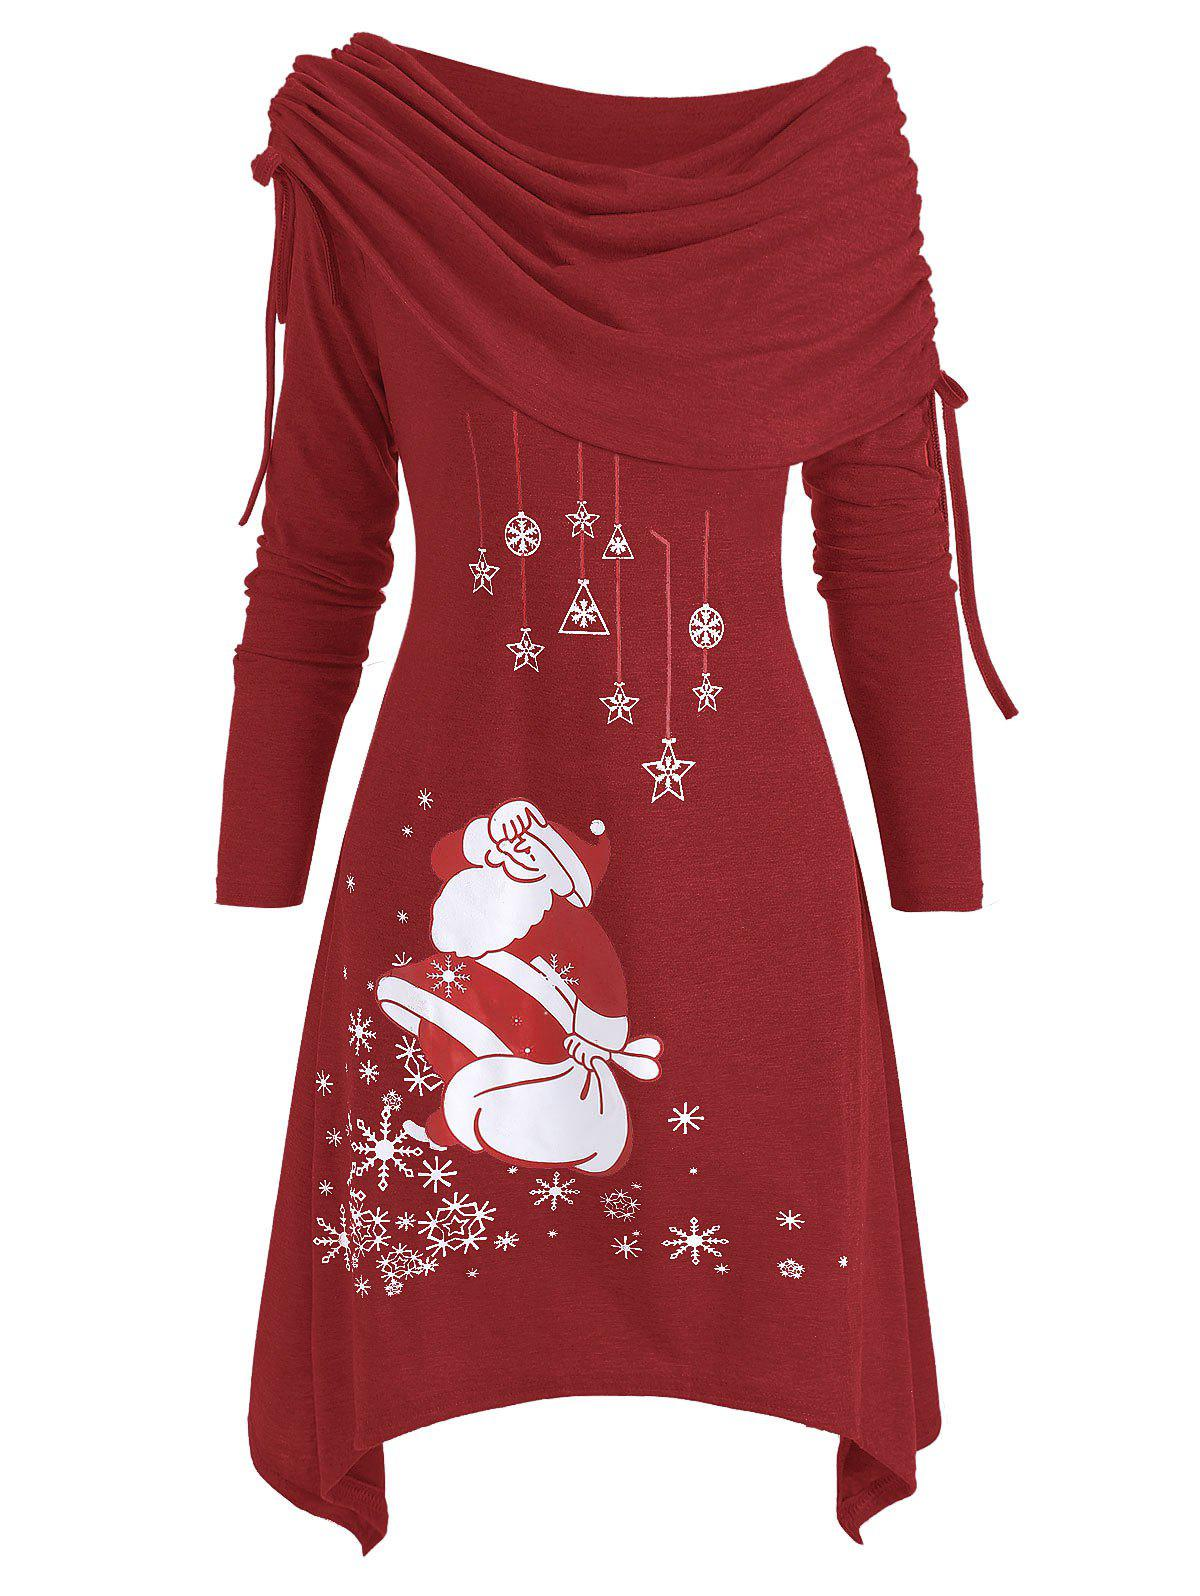 Hot Christmas Santa Claus Cinched Off Shoulder Asymmetrical Dress